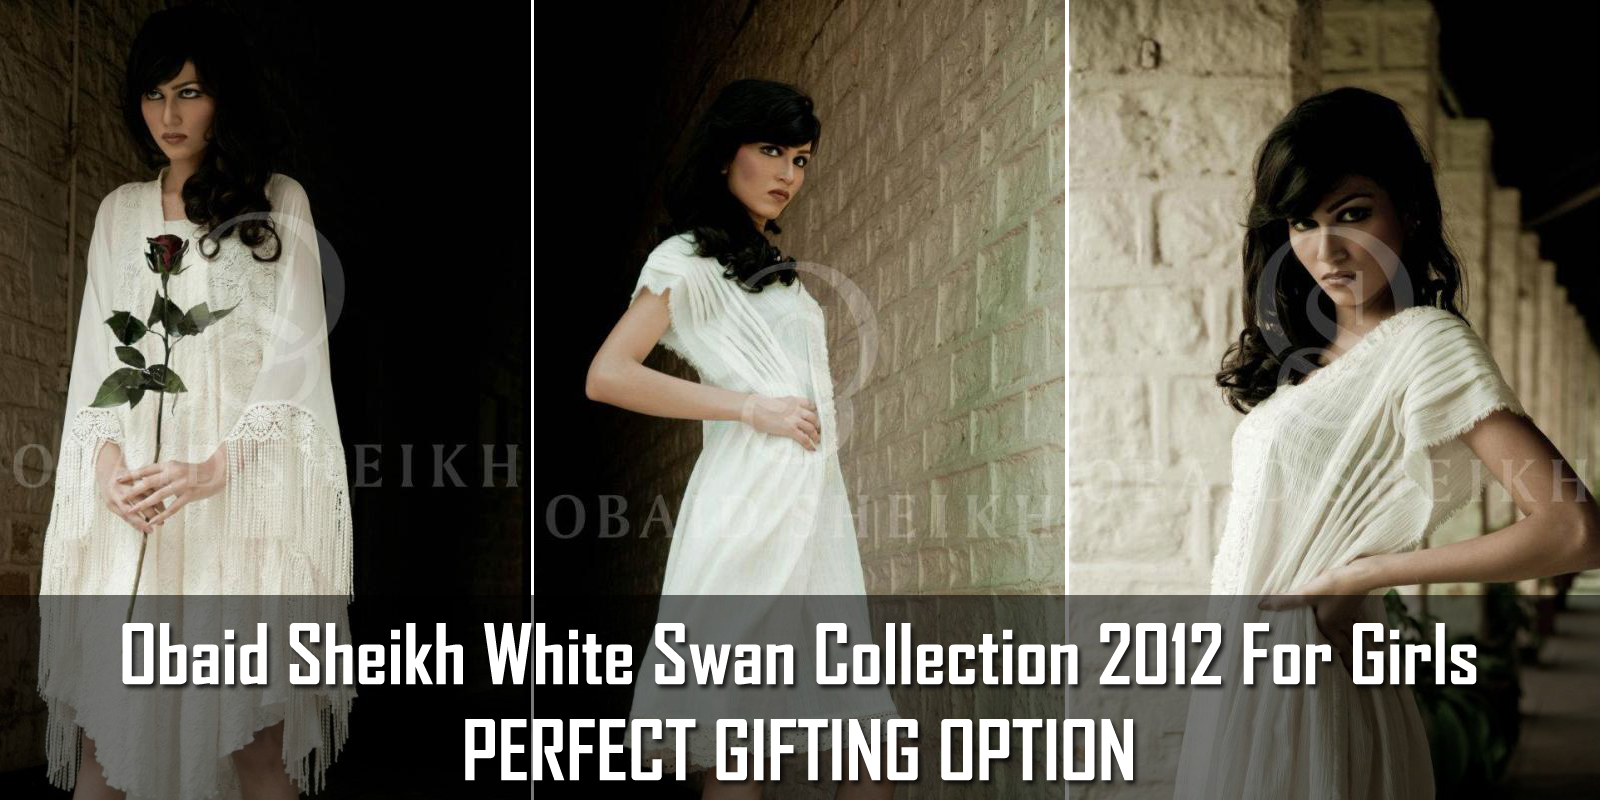 Obaid Sheikh White Swan Collection 2012  Western Style White Swan